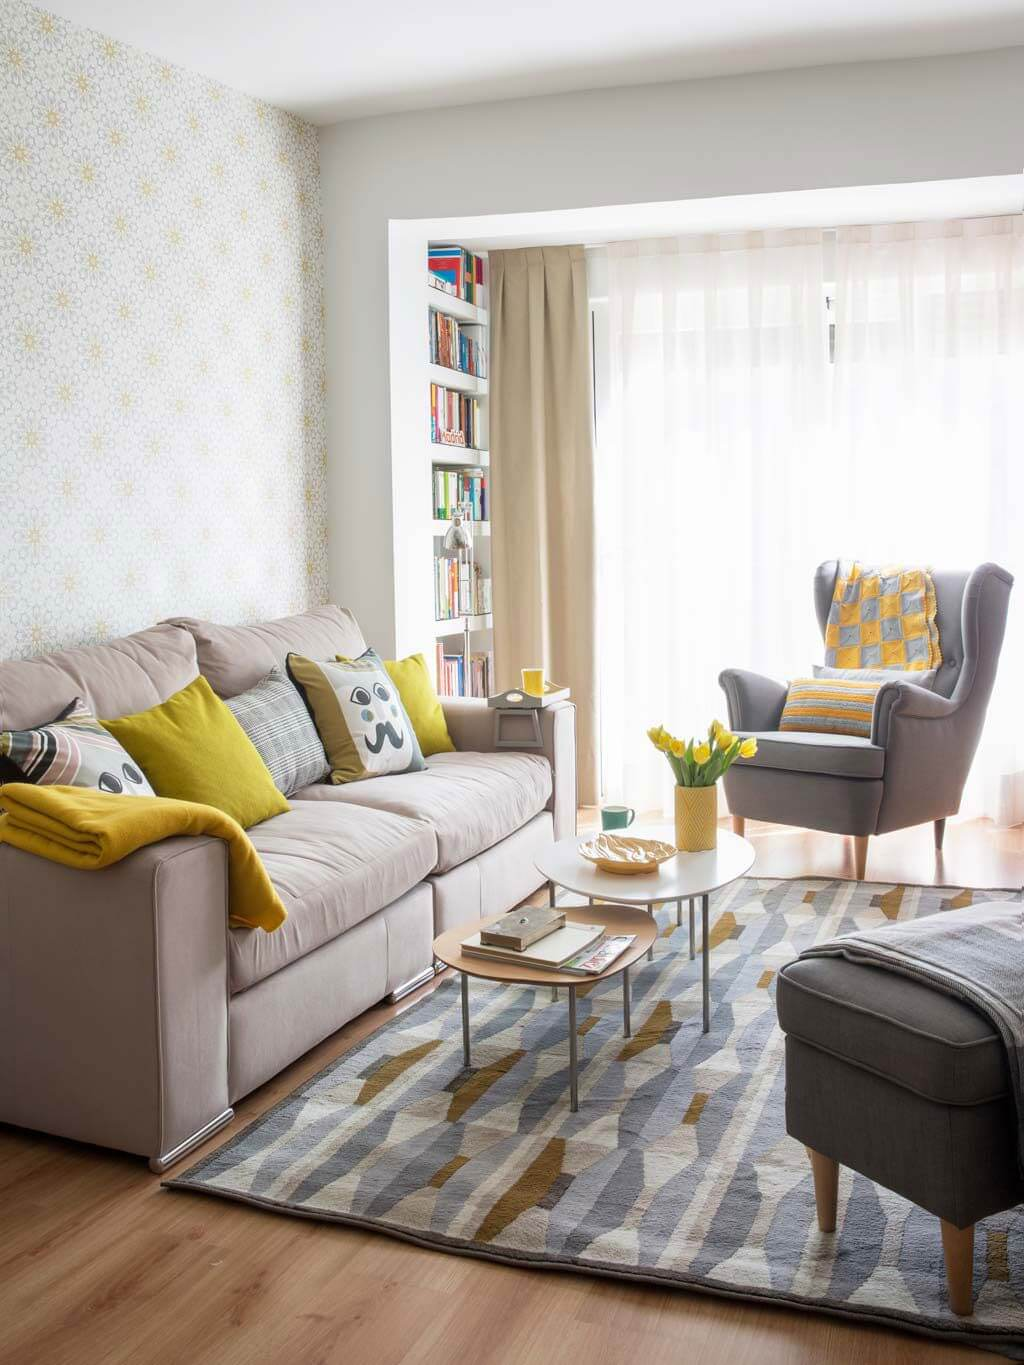 Small Apartment Living Room Decoration Ideas: 25+ Best Small Living Room Decor And Design Ideas For 2019